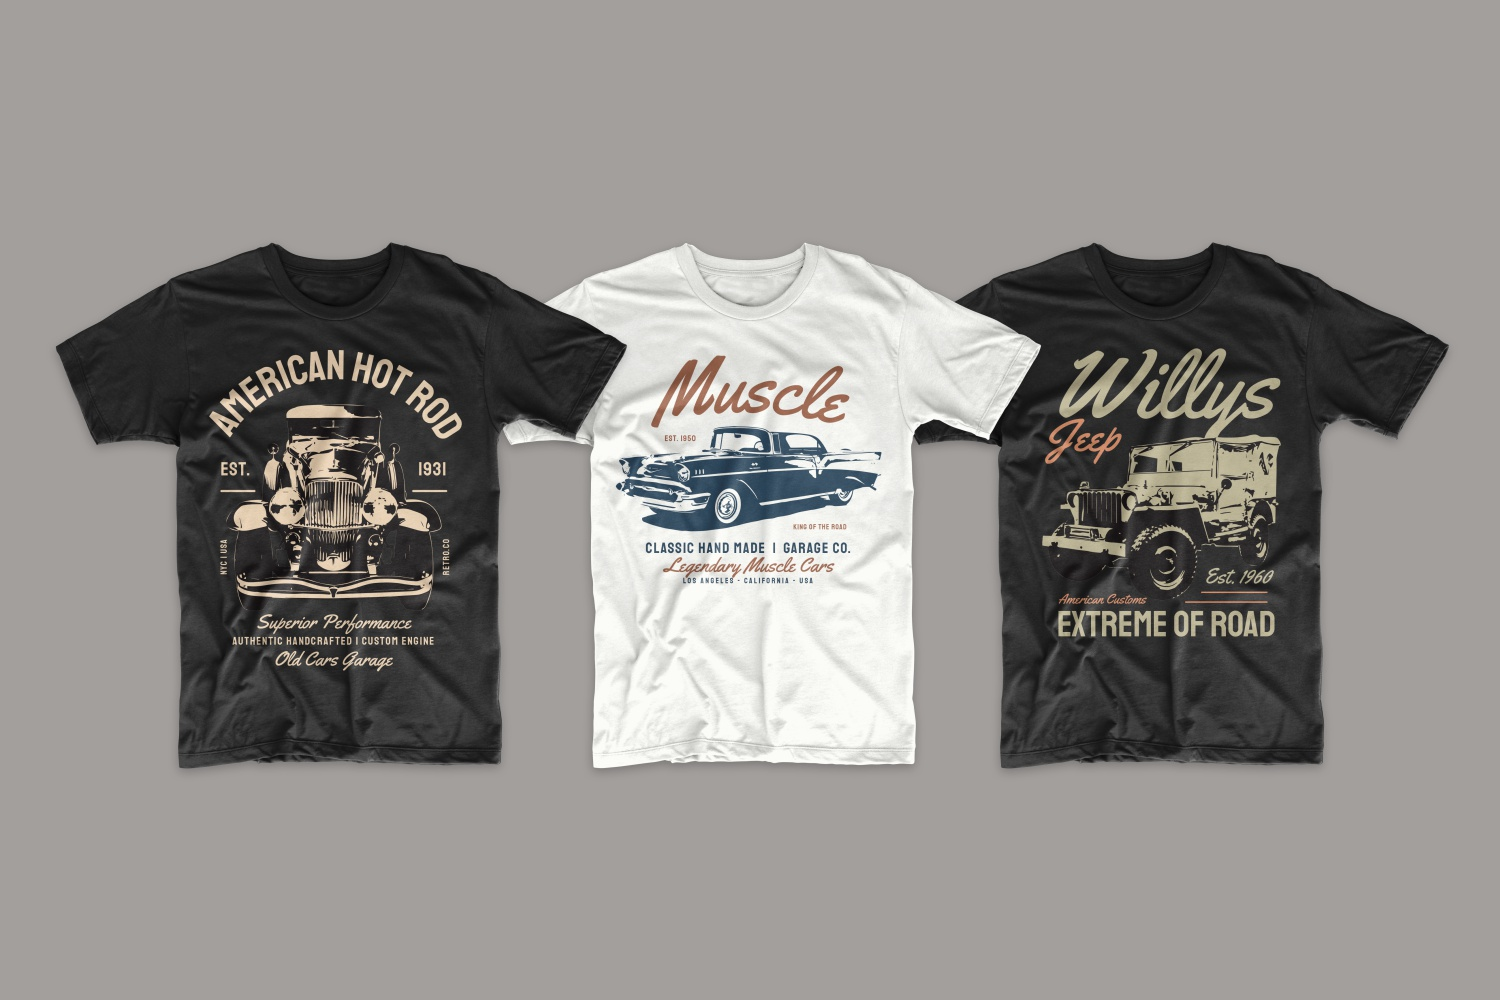 T-shirts featuring the first cars.